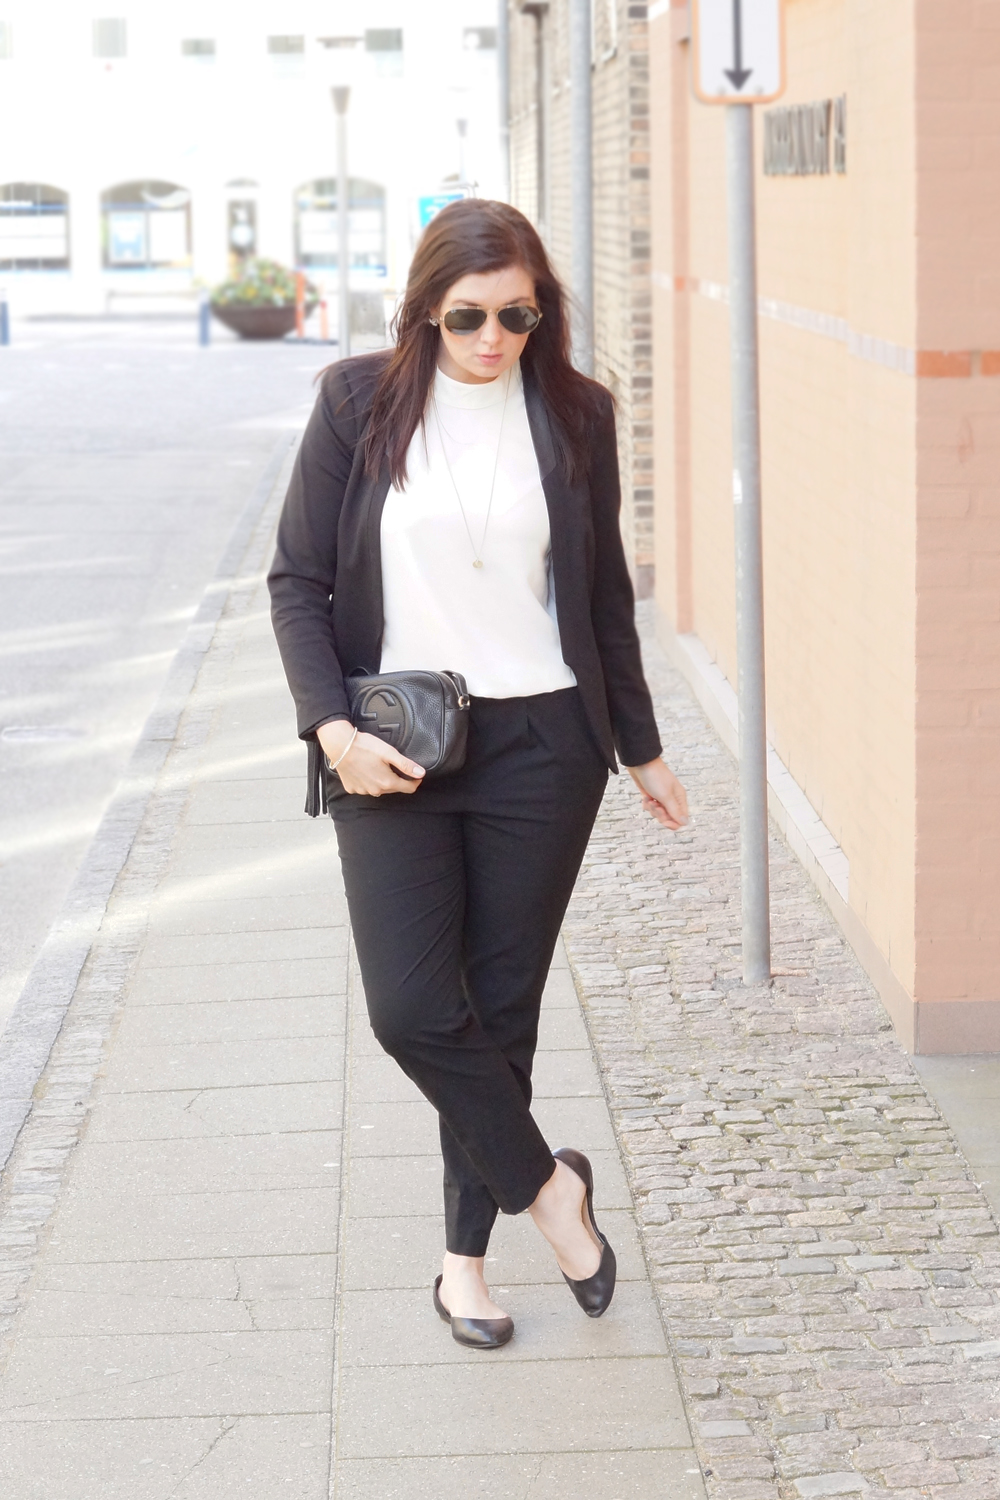 OUTFIT: BLACK SUIT & TURTLENECK